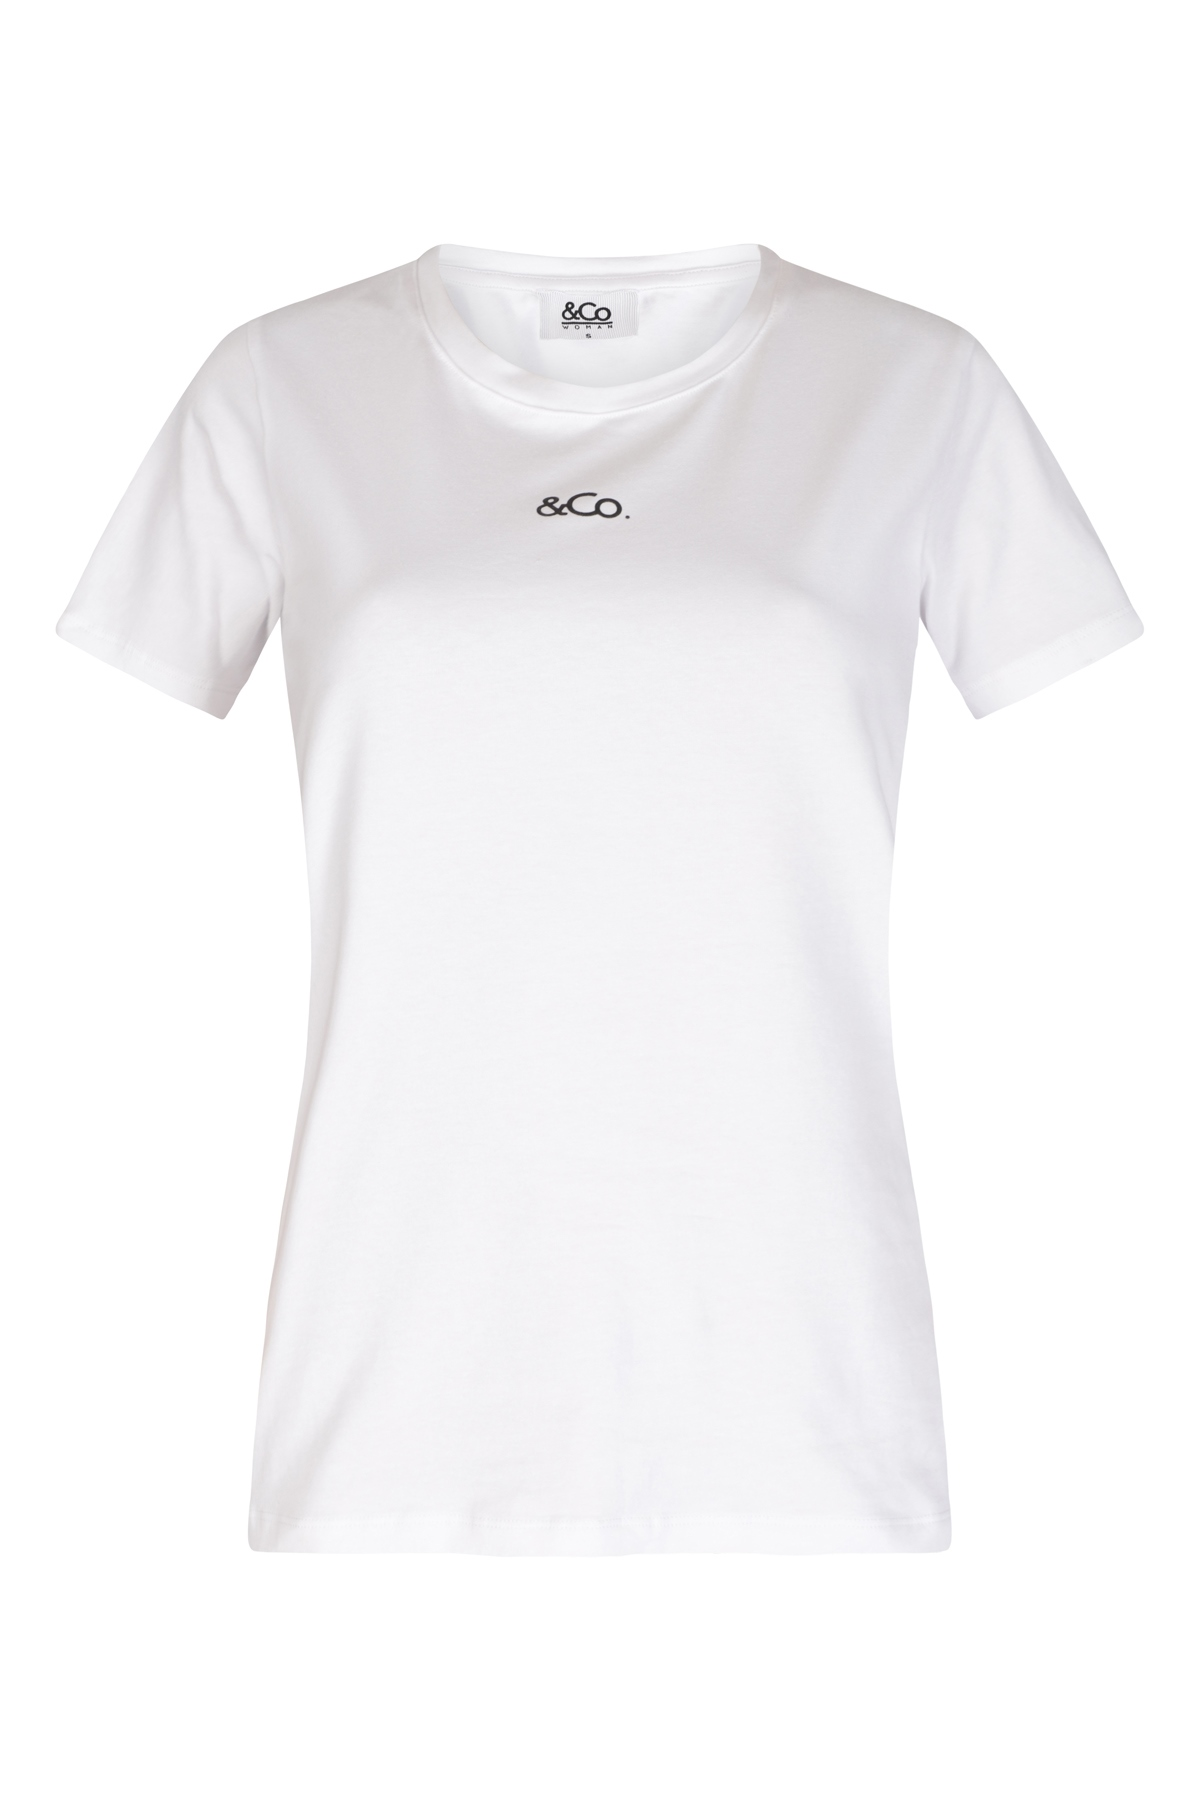 &Co Woman Shirt - Top Wit Lois